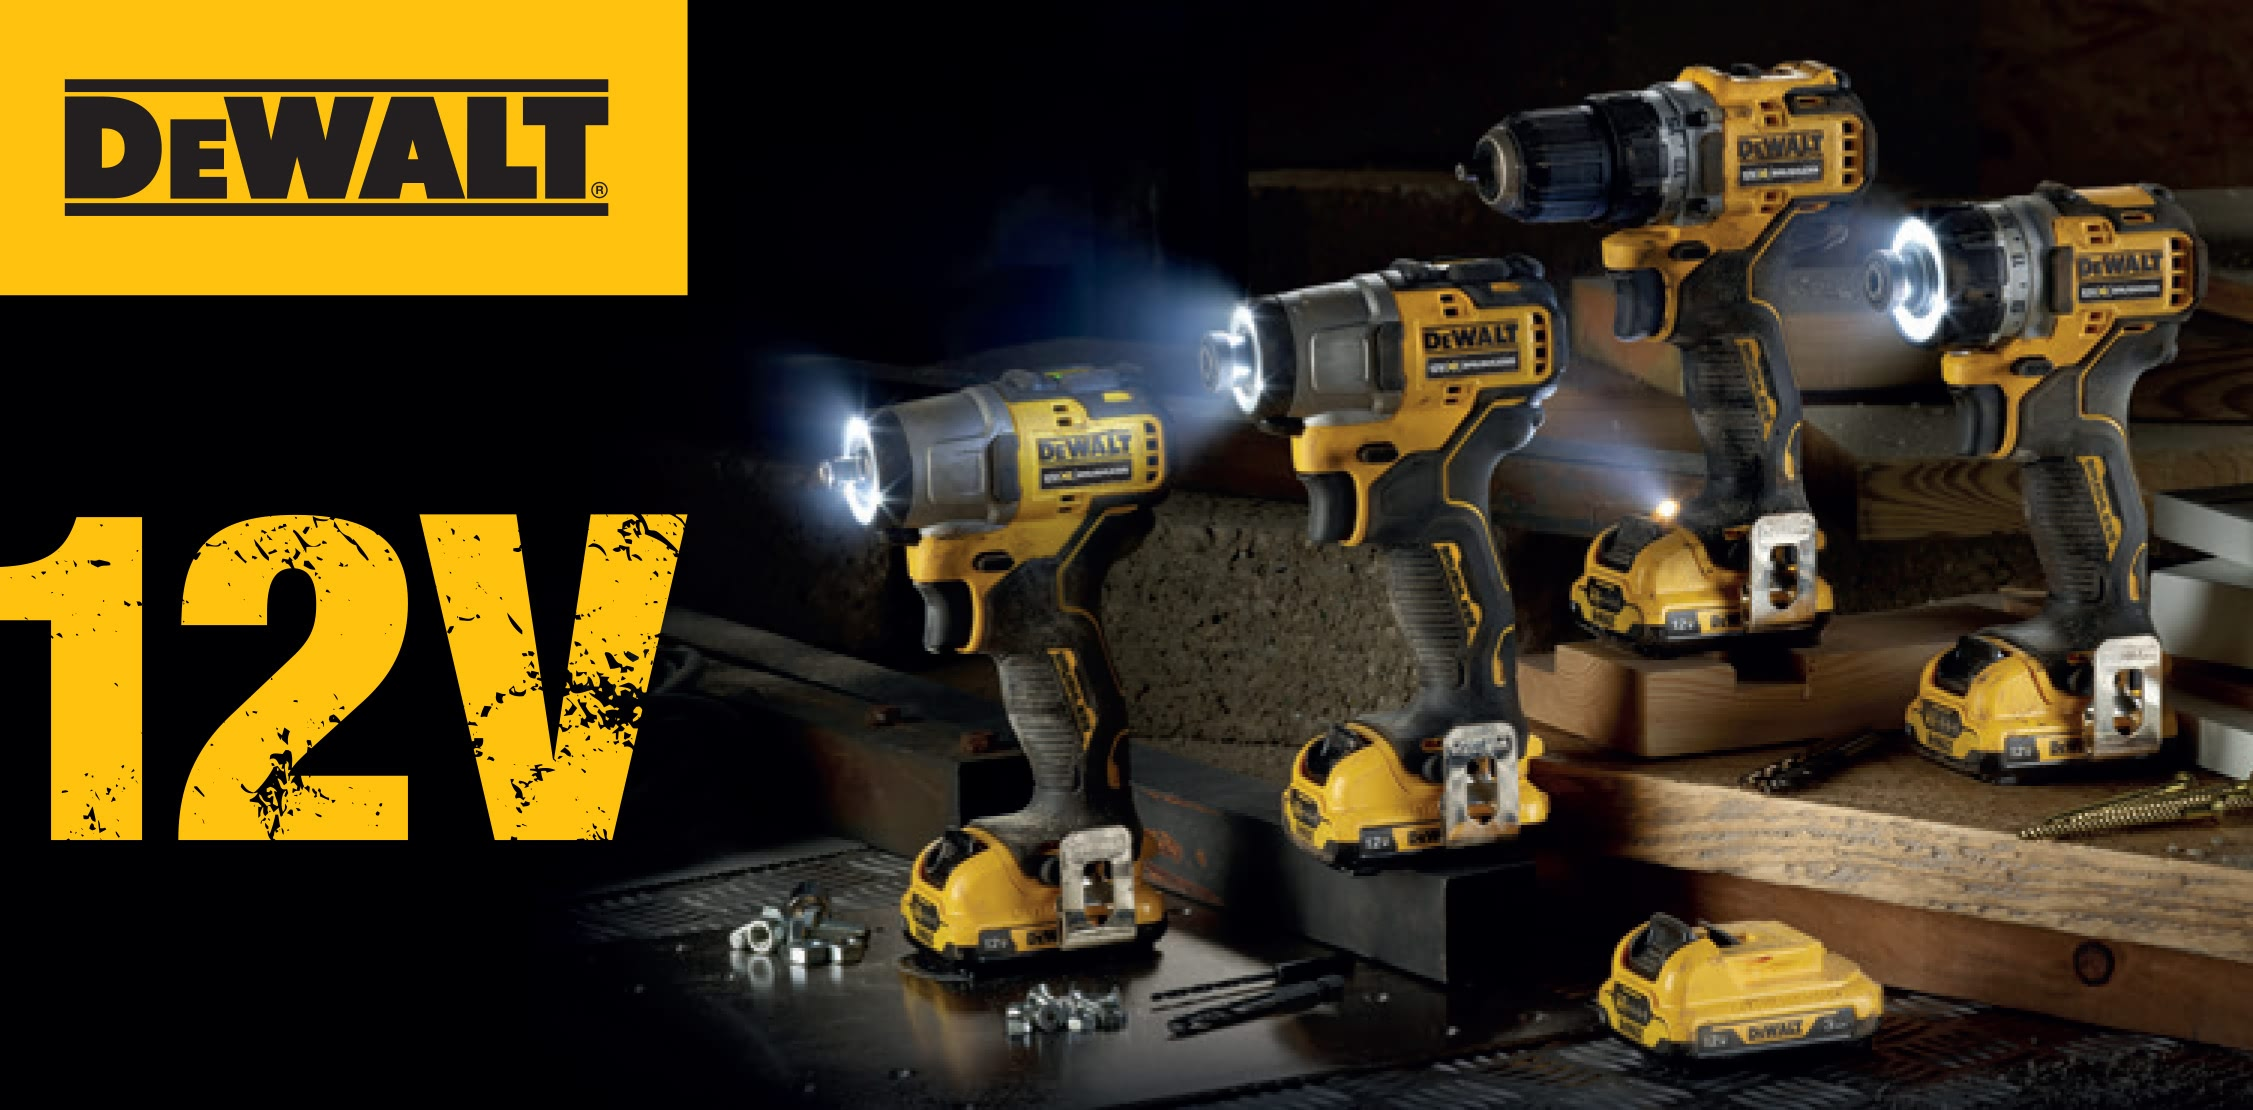 Dewalt 12v power tools